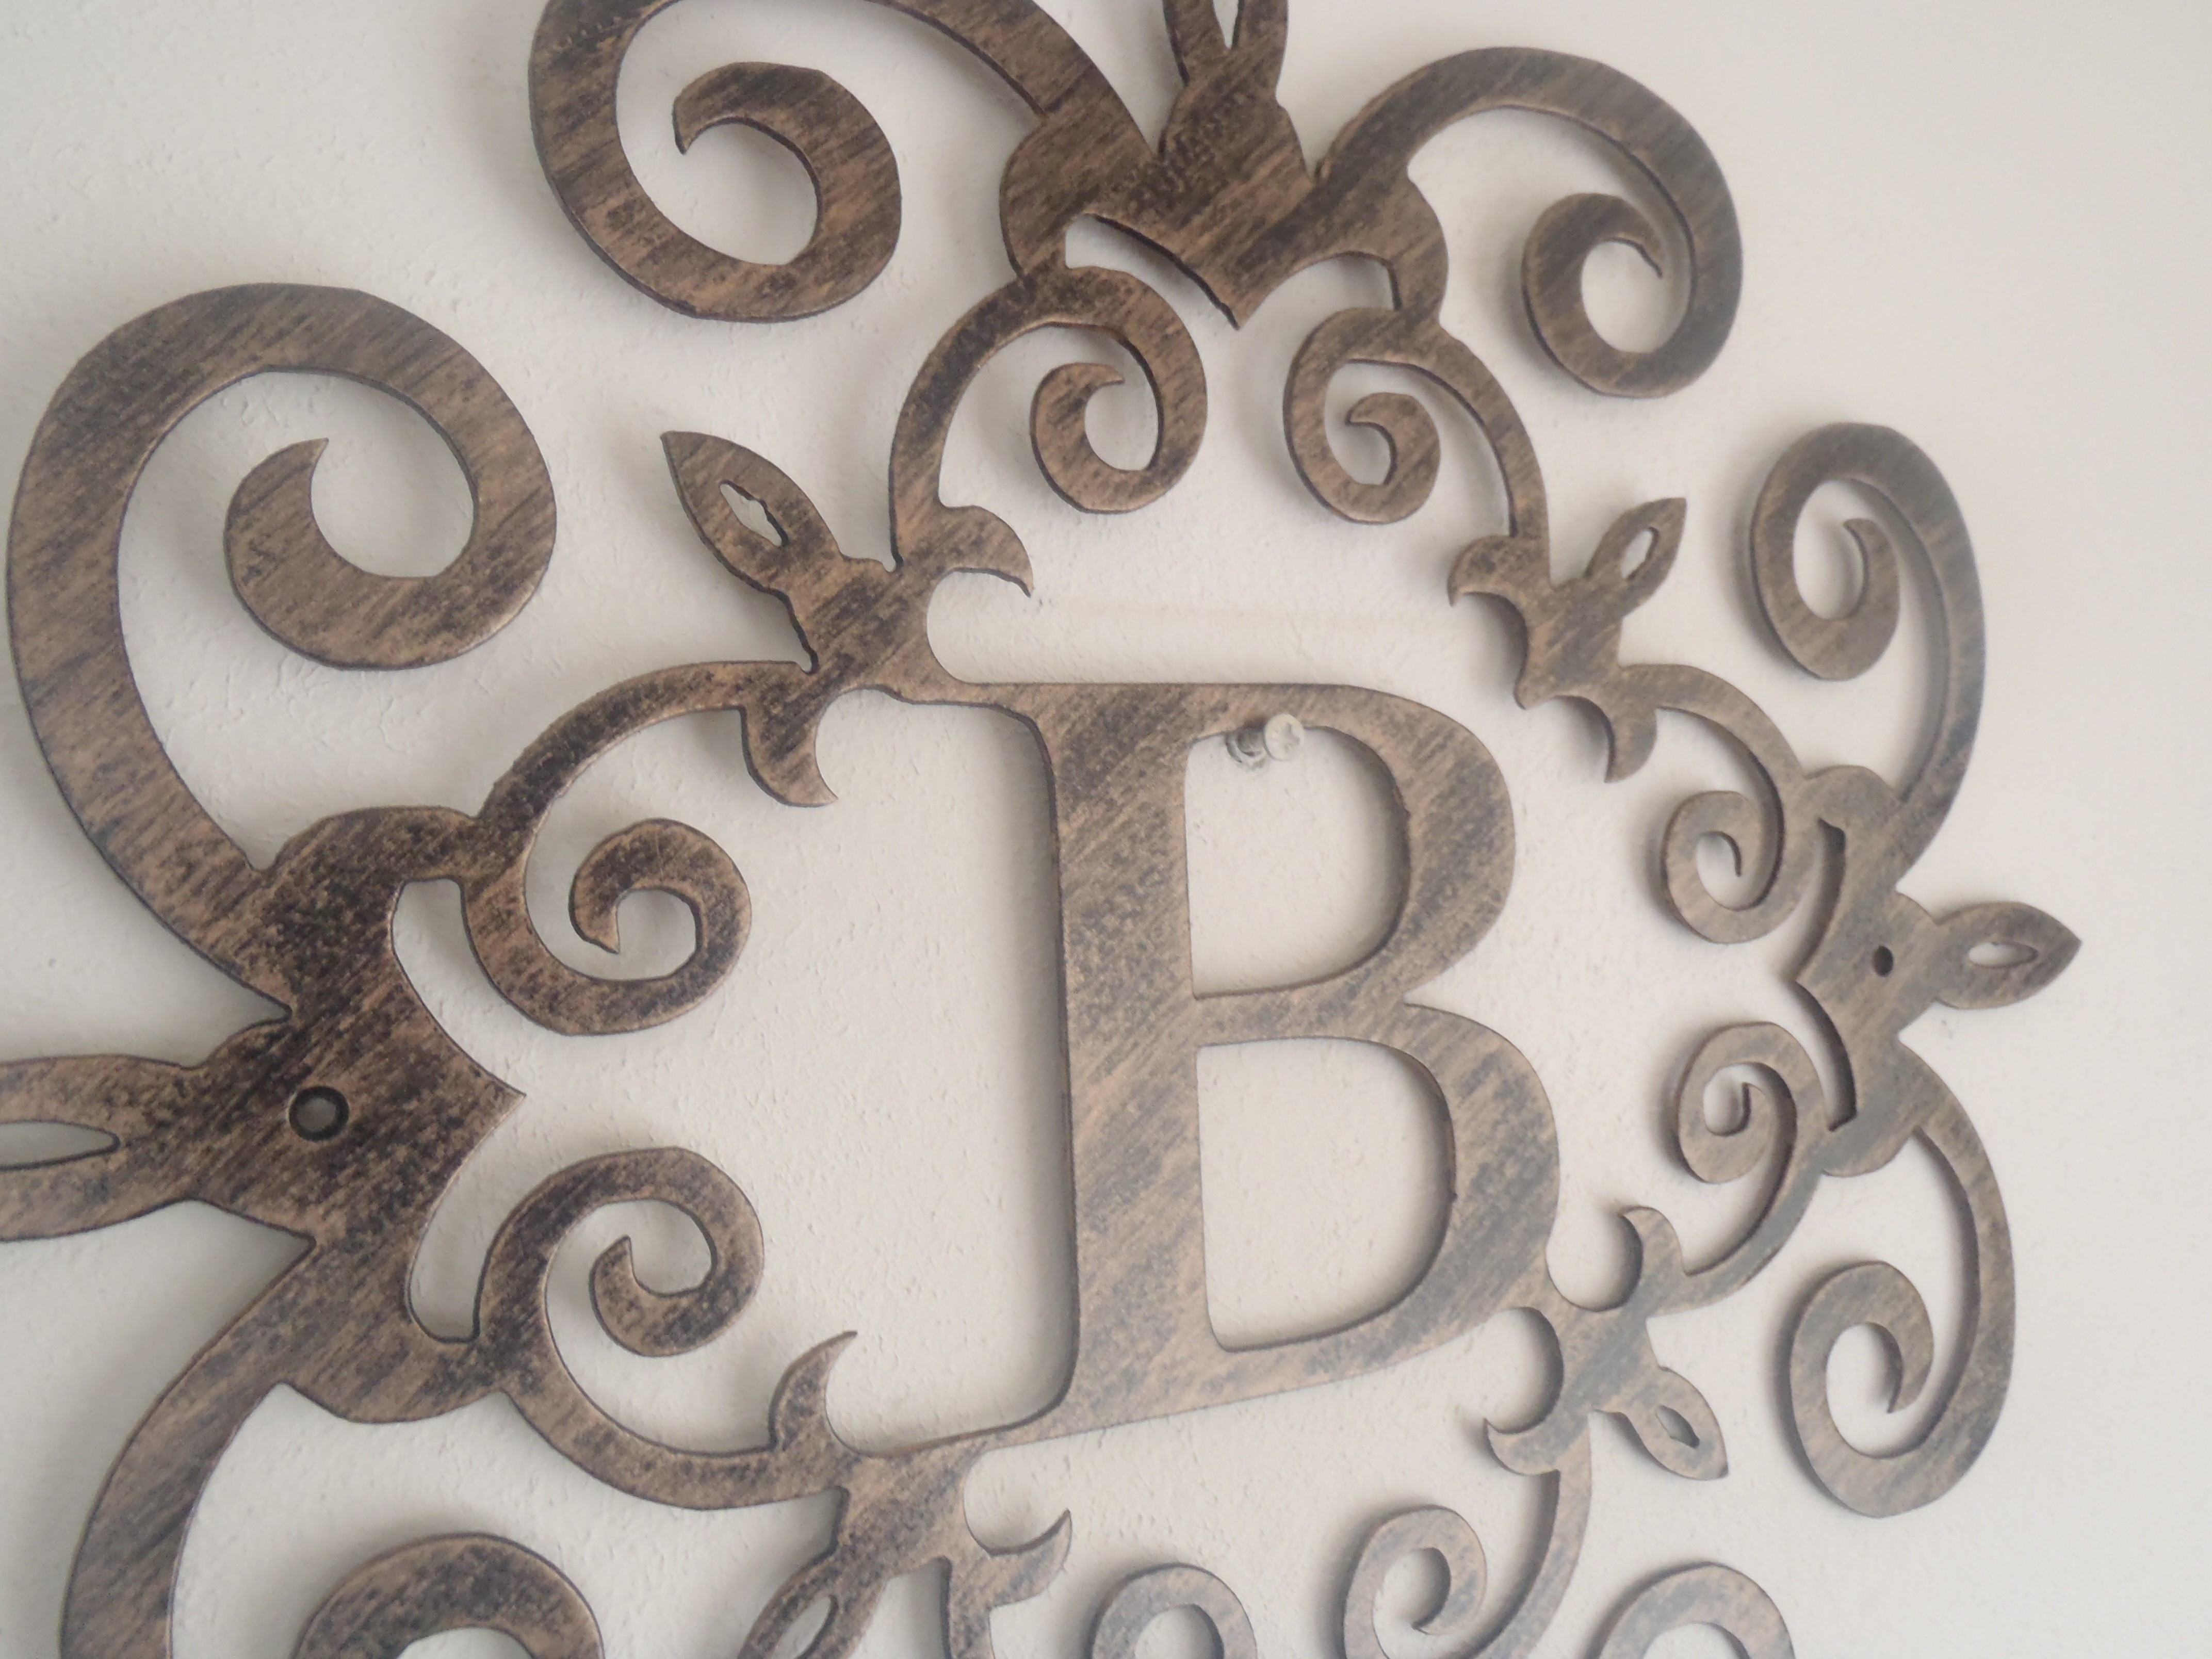 Metal Initial Letters Inspiration Of Monogram Wall Art | Wall Art For Recent Metal Letter Wall Art (View 2 of 20)